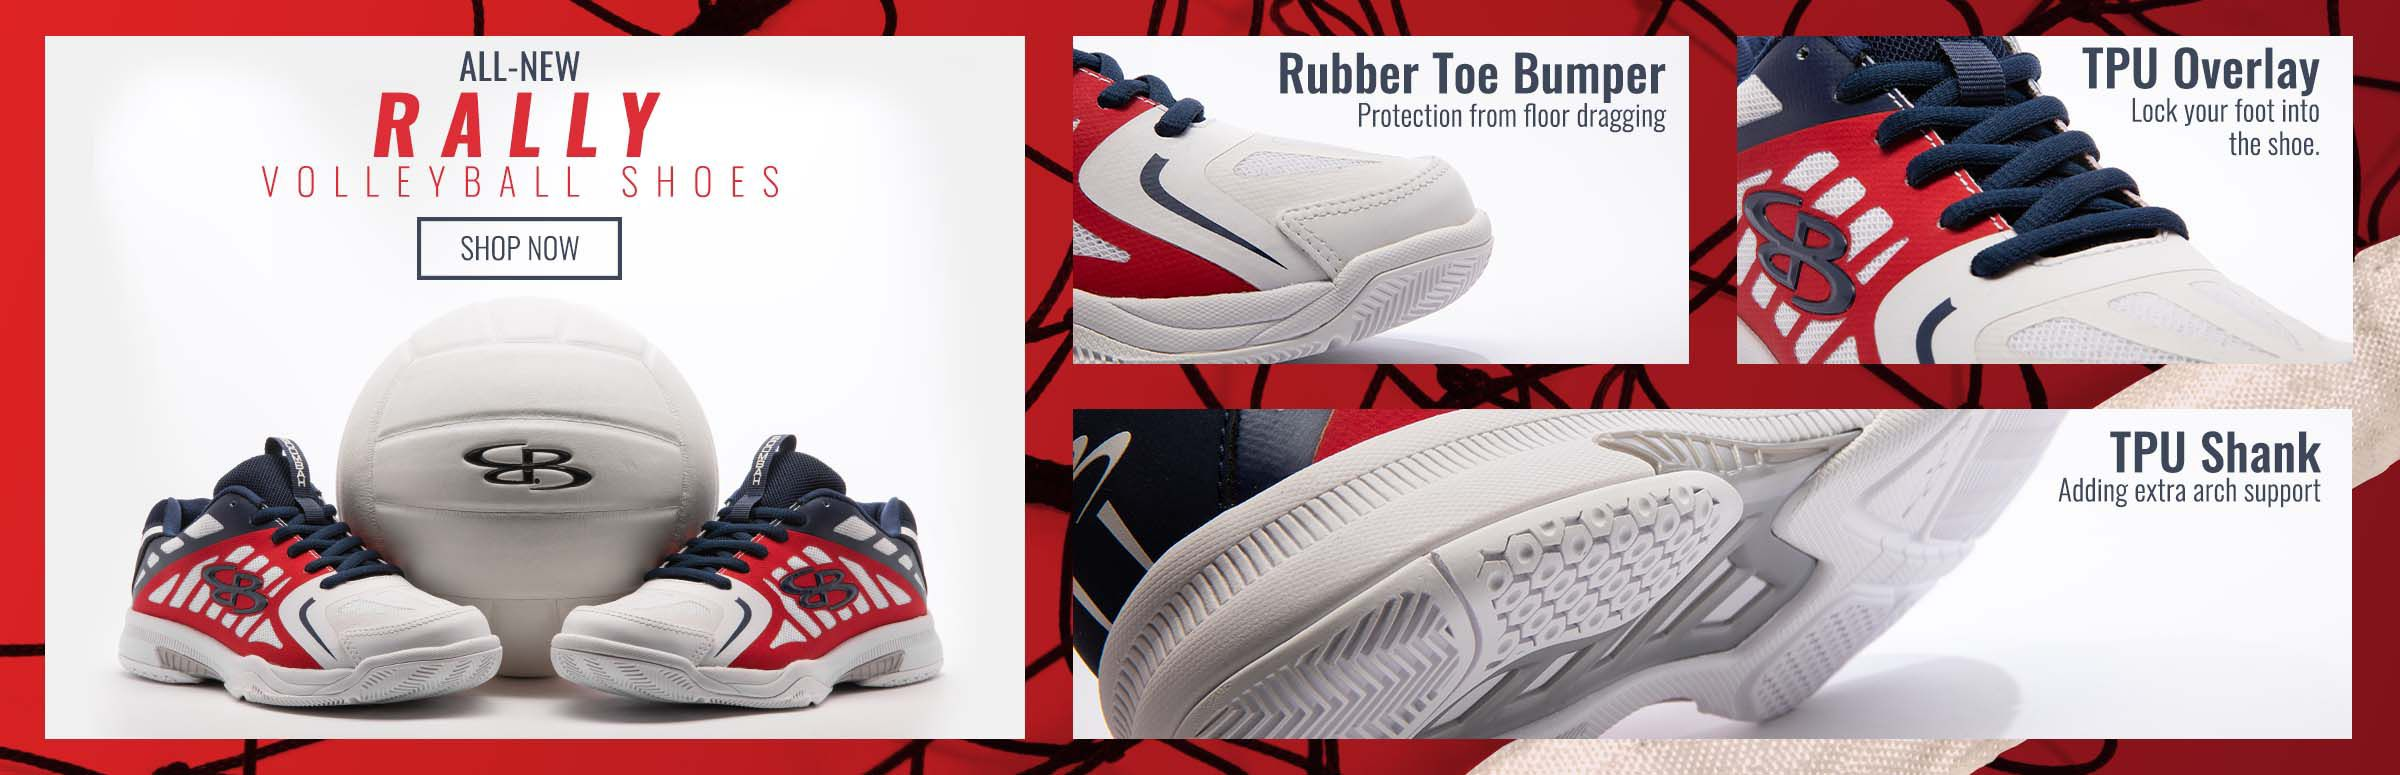 All-New Rally Volleyball Shoes